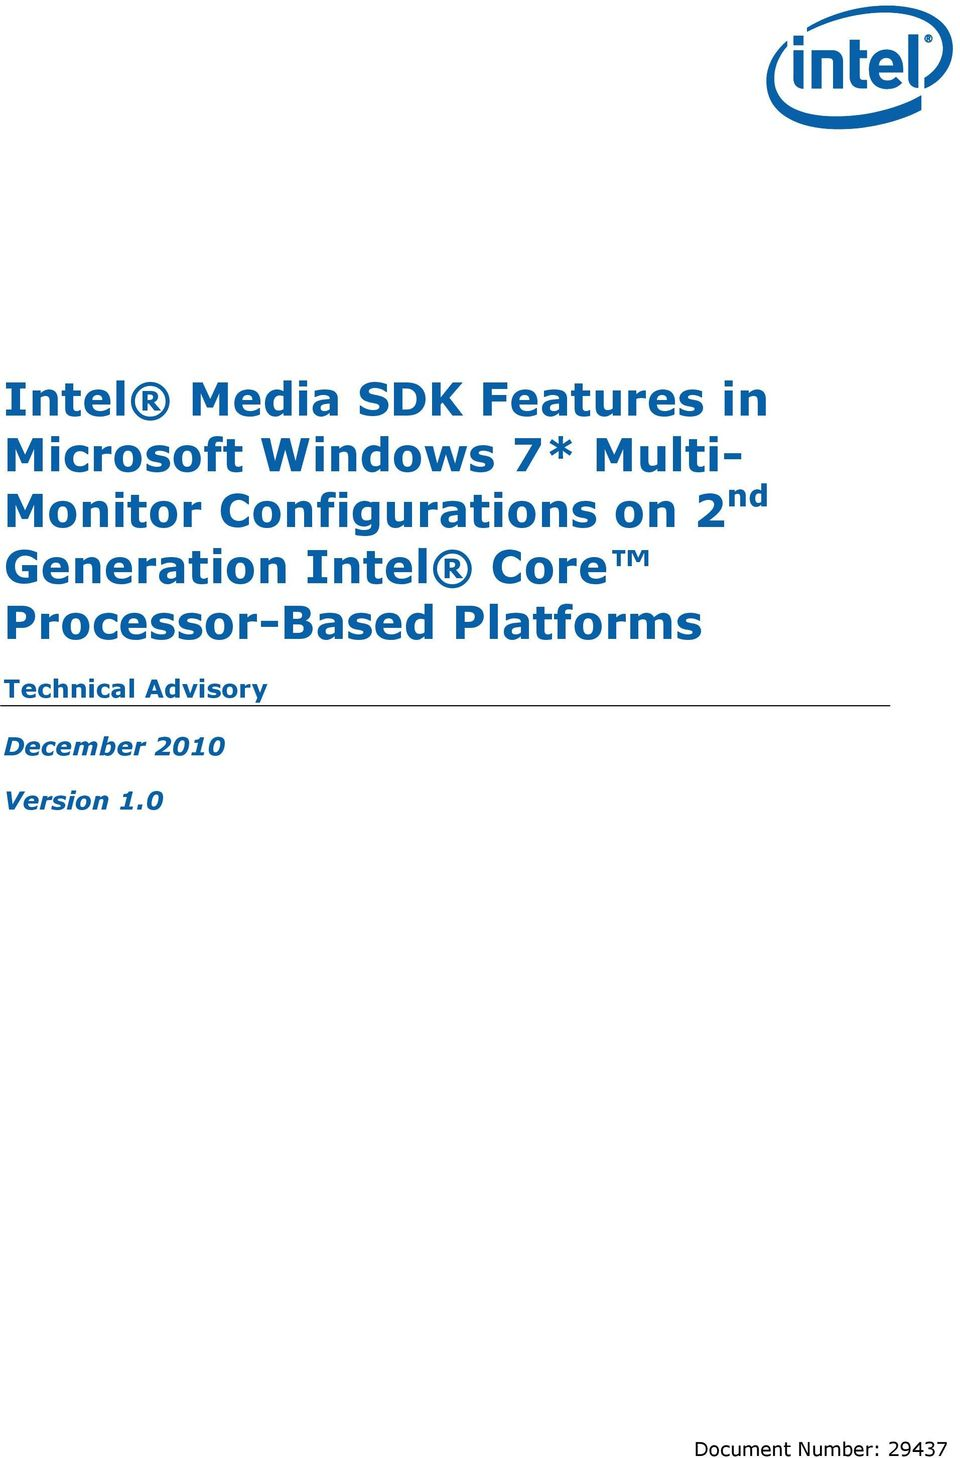 Intel Core Processor-Based Platforms Technical